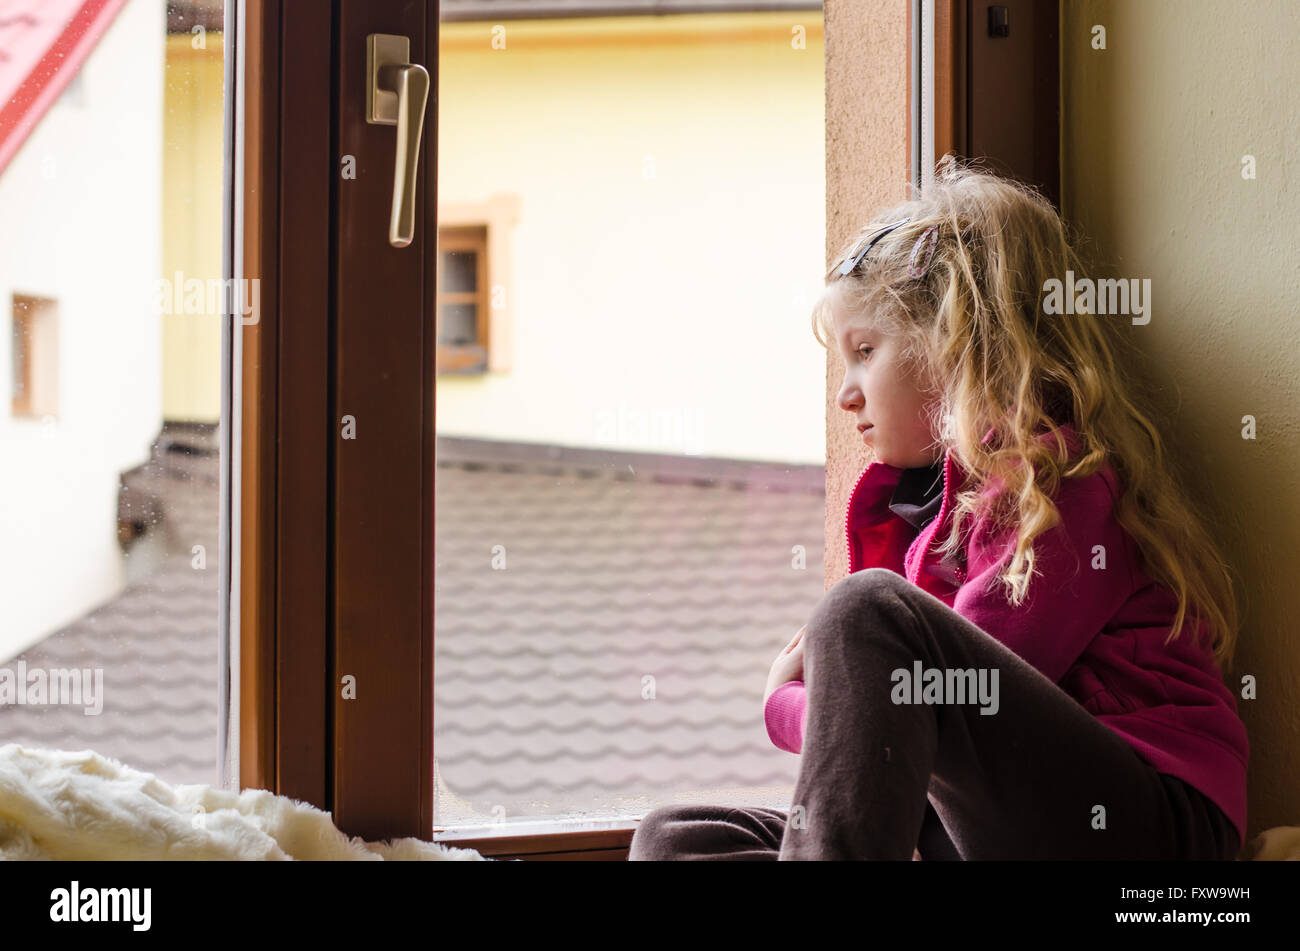 Sit In Window lonely girl sittingthe window stock photo, royalty free image